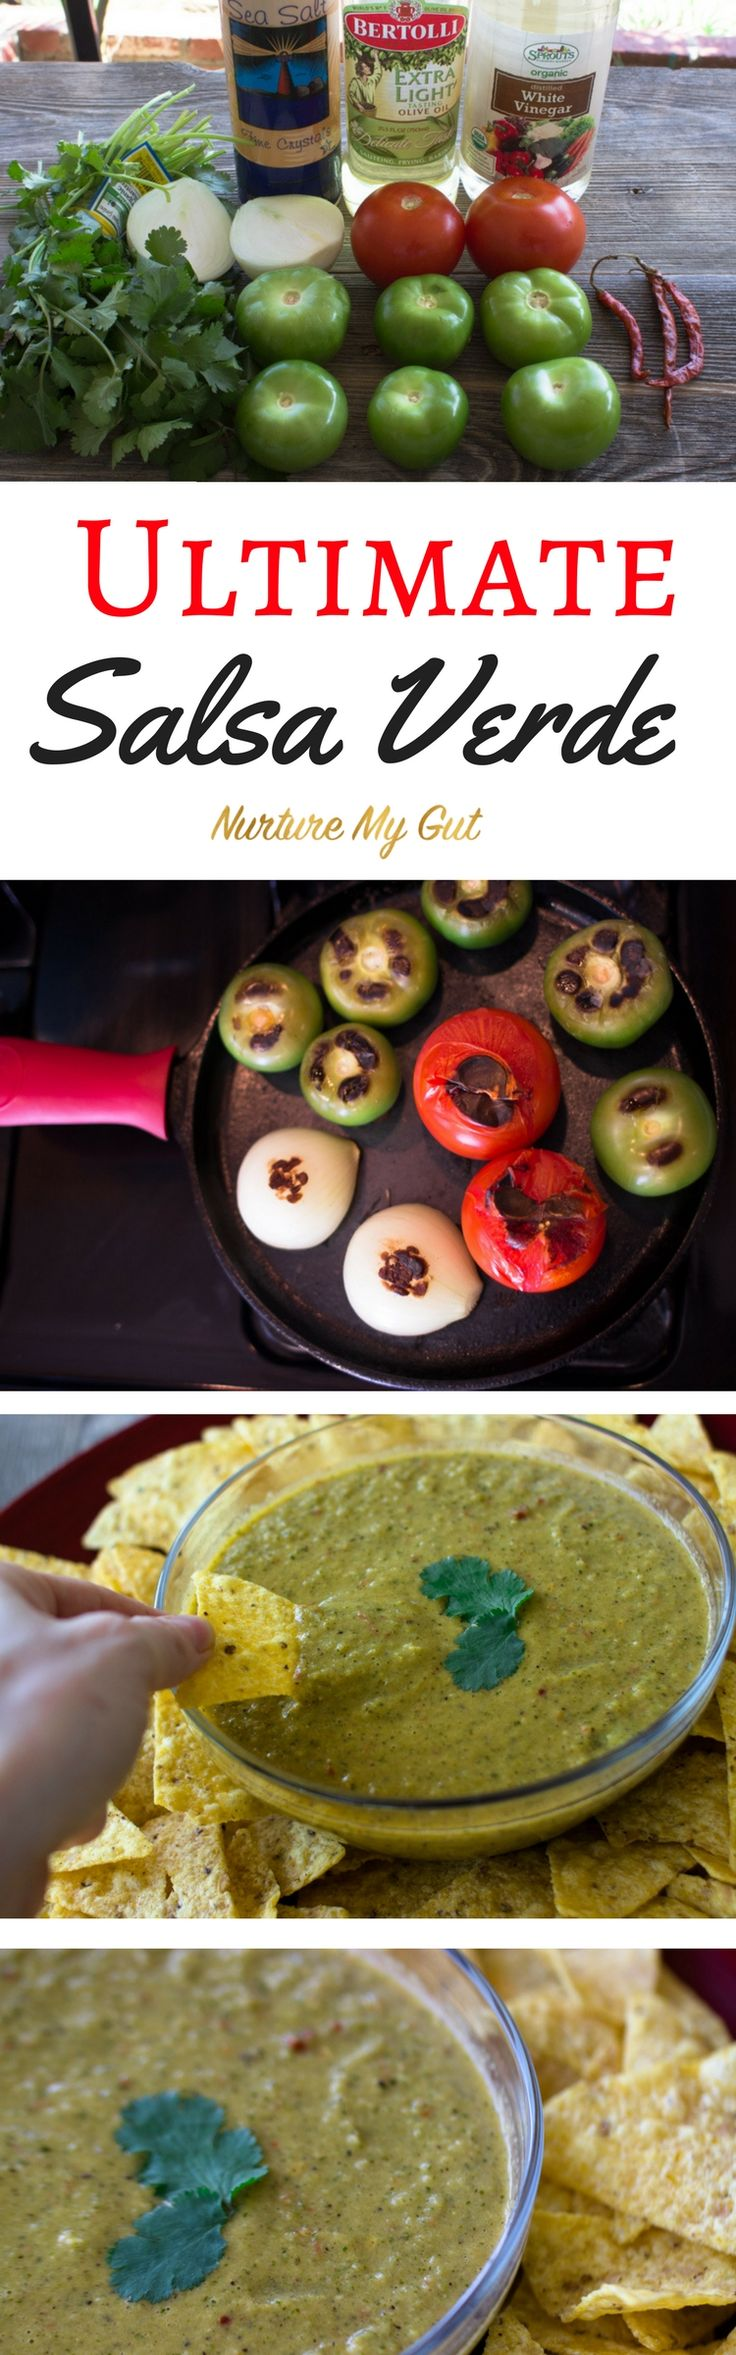 This Ultimate Salsa Verde Recipe adds the perfect kick to carne asada tacos, burritos and corn chips.  It is easily roasted in a cast-iron skillet and blended to perfection.  The combination of tomatillos and vine-ripened red tomatoes balances the flavors in this tangy salsa.  Perfect for game day!